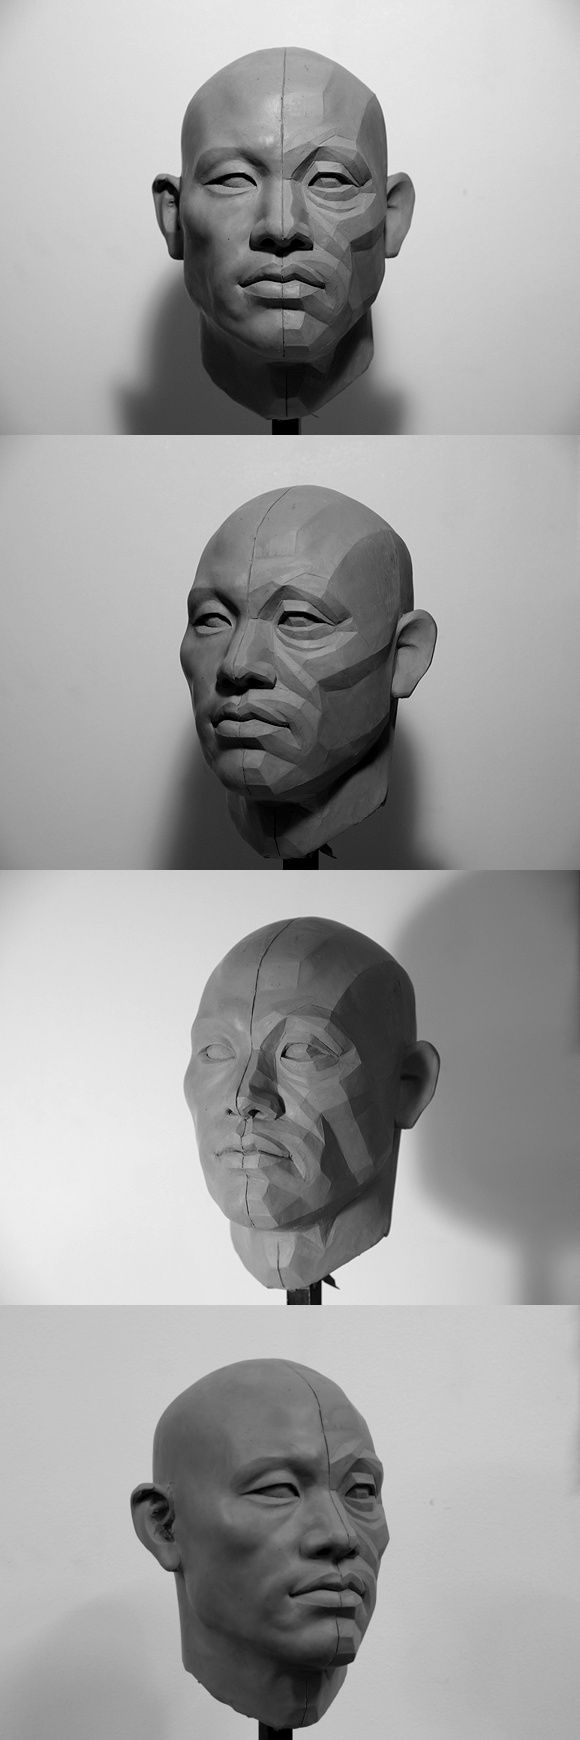 Planar model of the face. Awesome.